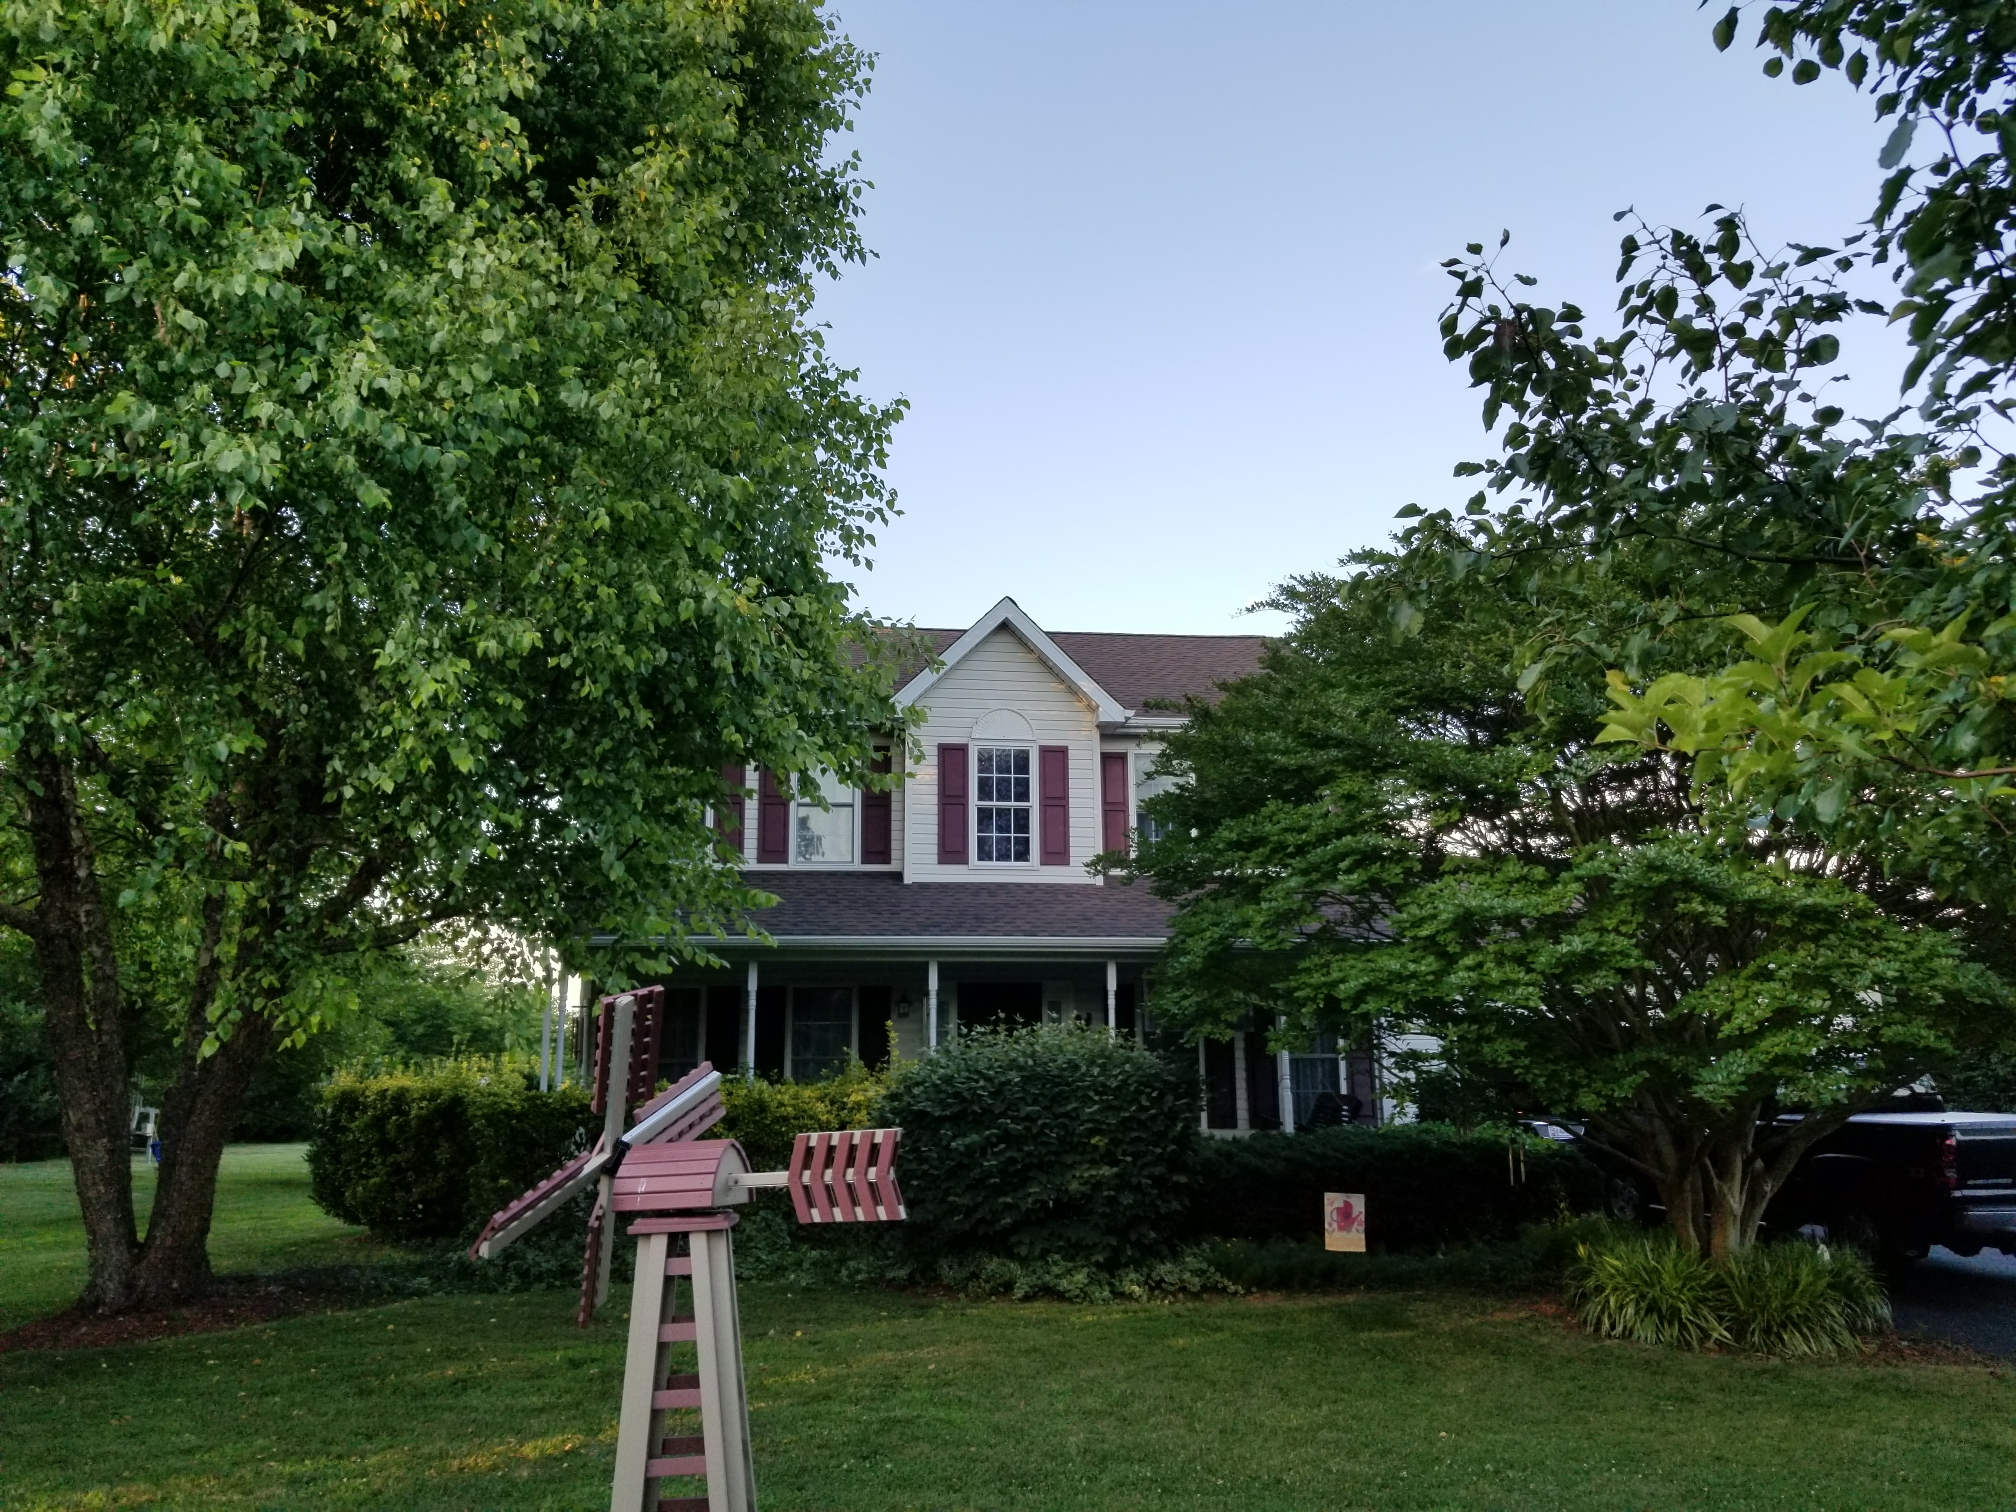 Earleville, MD - Just finished this GAF Timberline HD Lifetime Roof Replacement